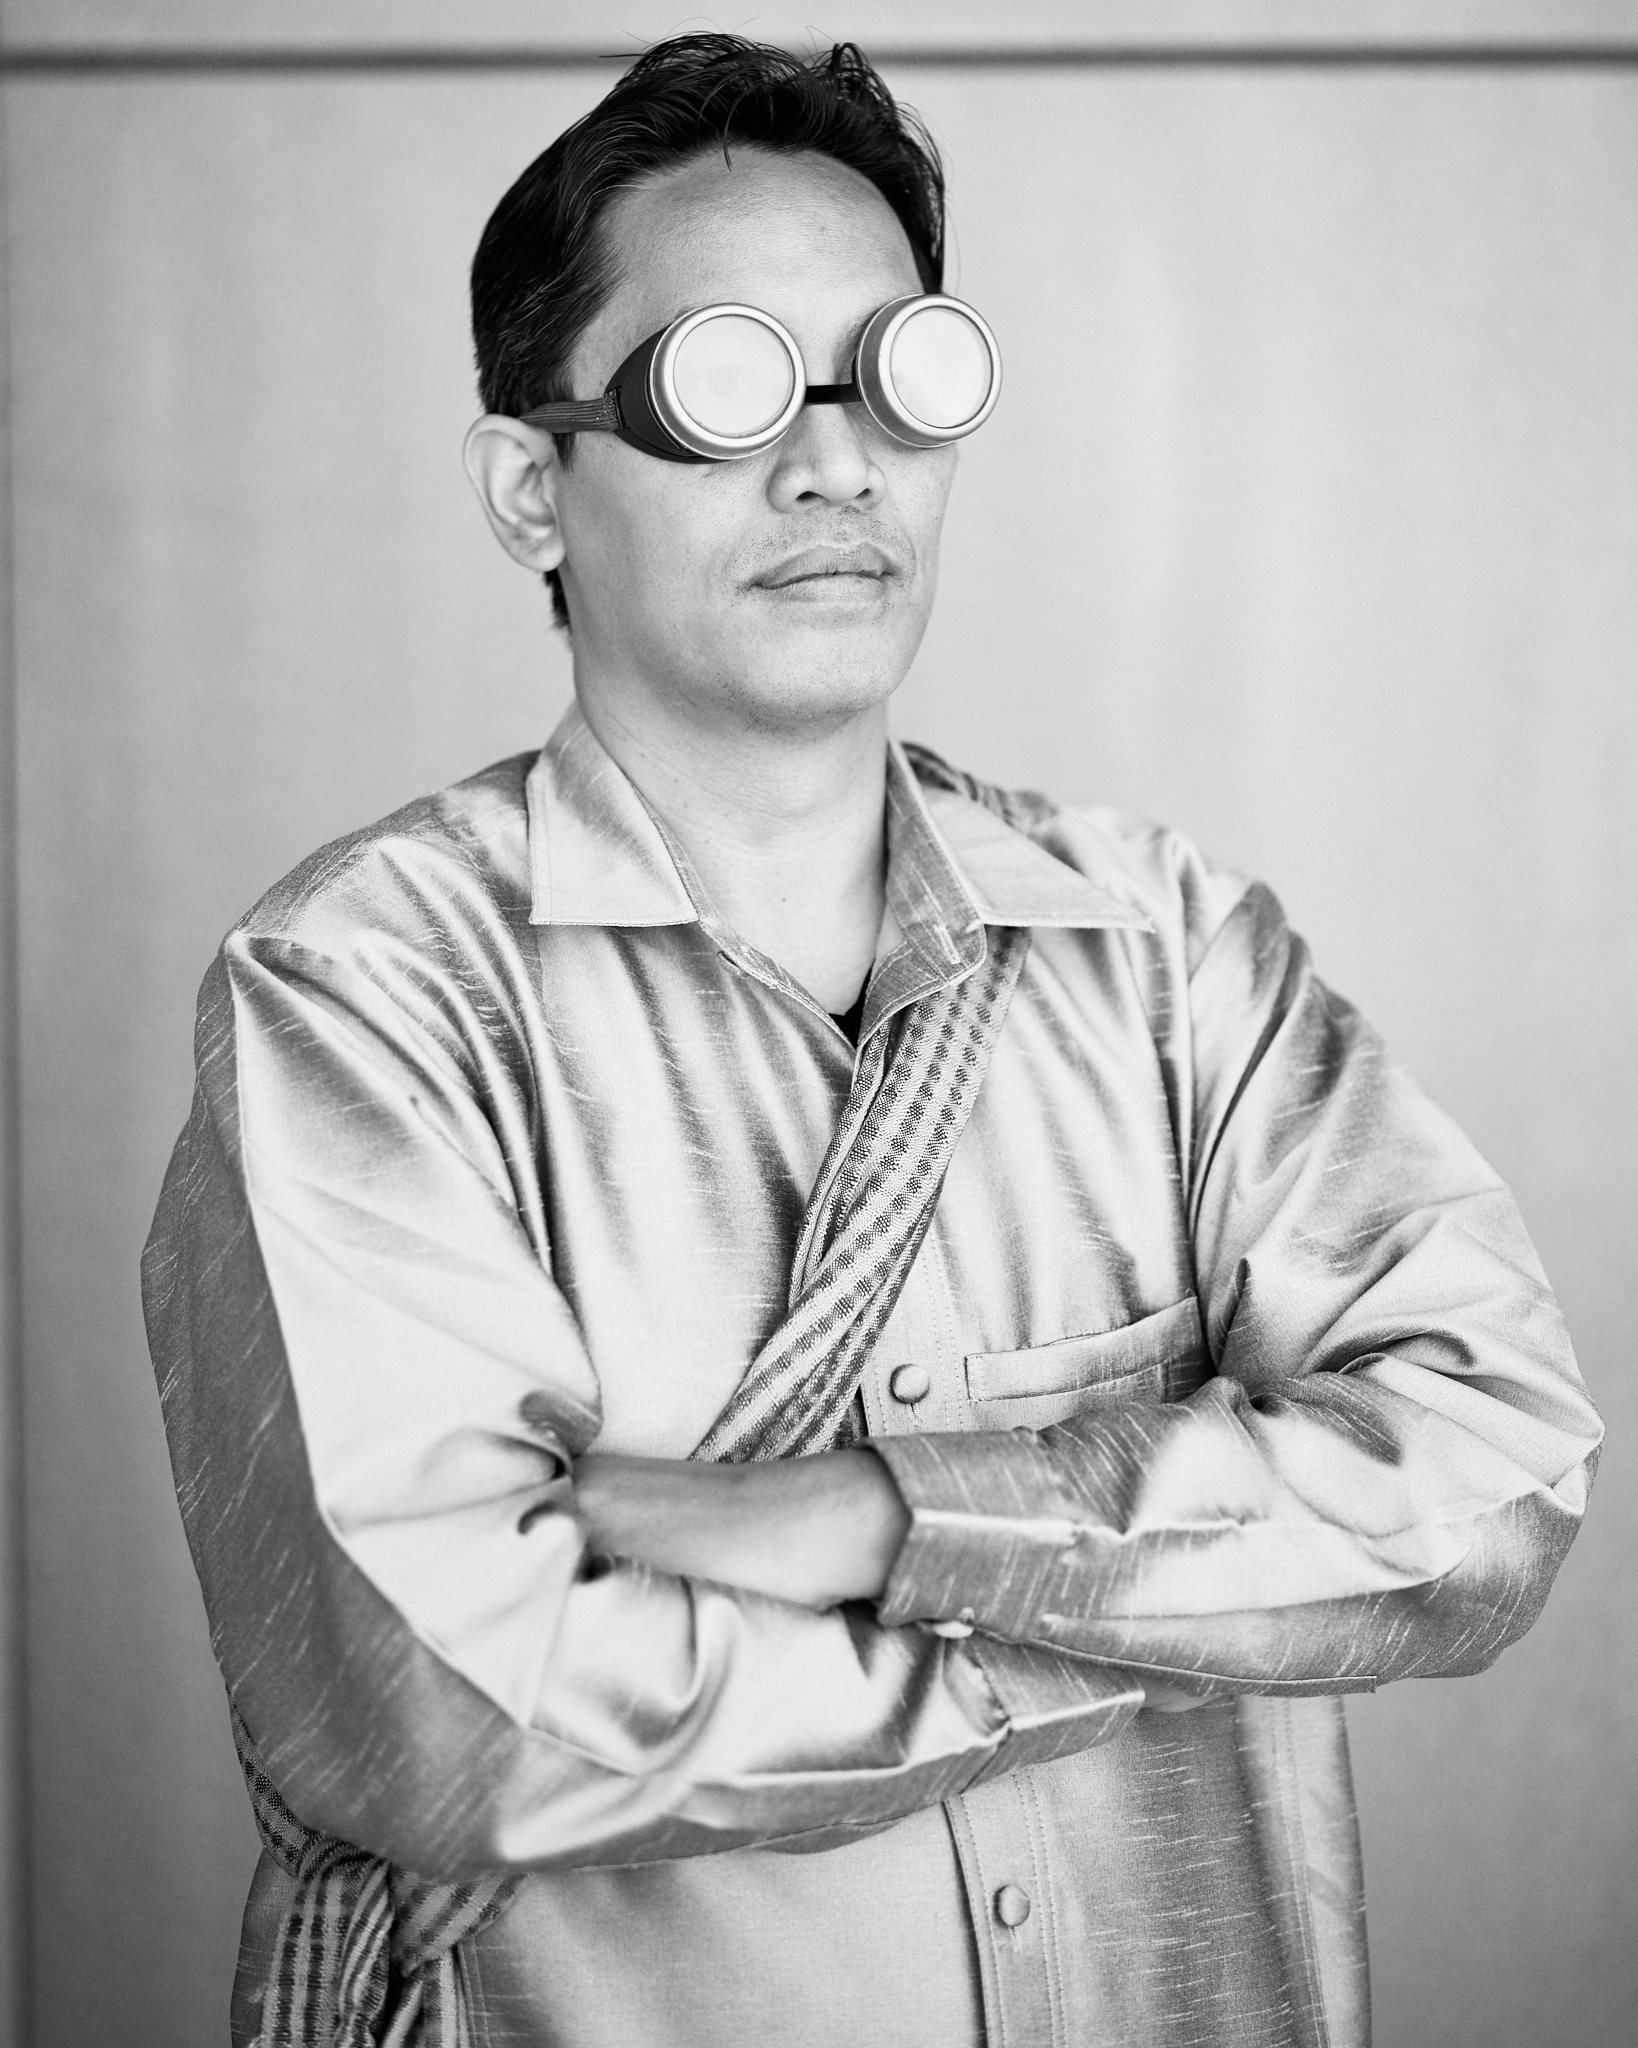 Bryan Thao Worra  holds an National Endowment for the Arts Fellowship in Poetry and over 20 awards for his writing and community leadership. Represented Laos during the 2012 London Summer Games as a ...  Read More   Follow:  @bthaoworra